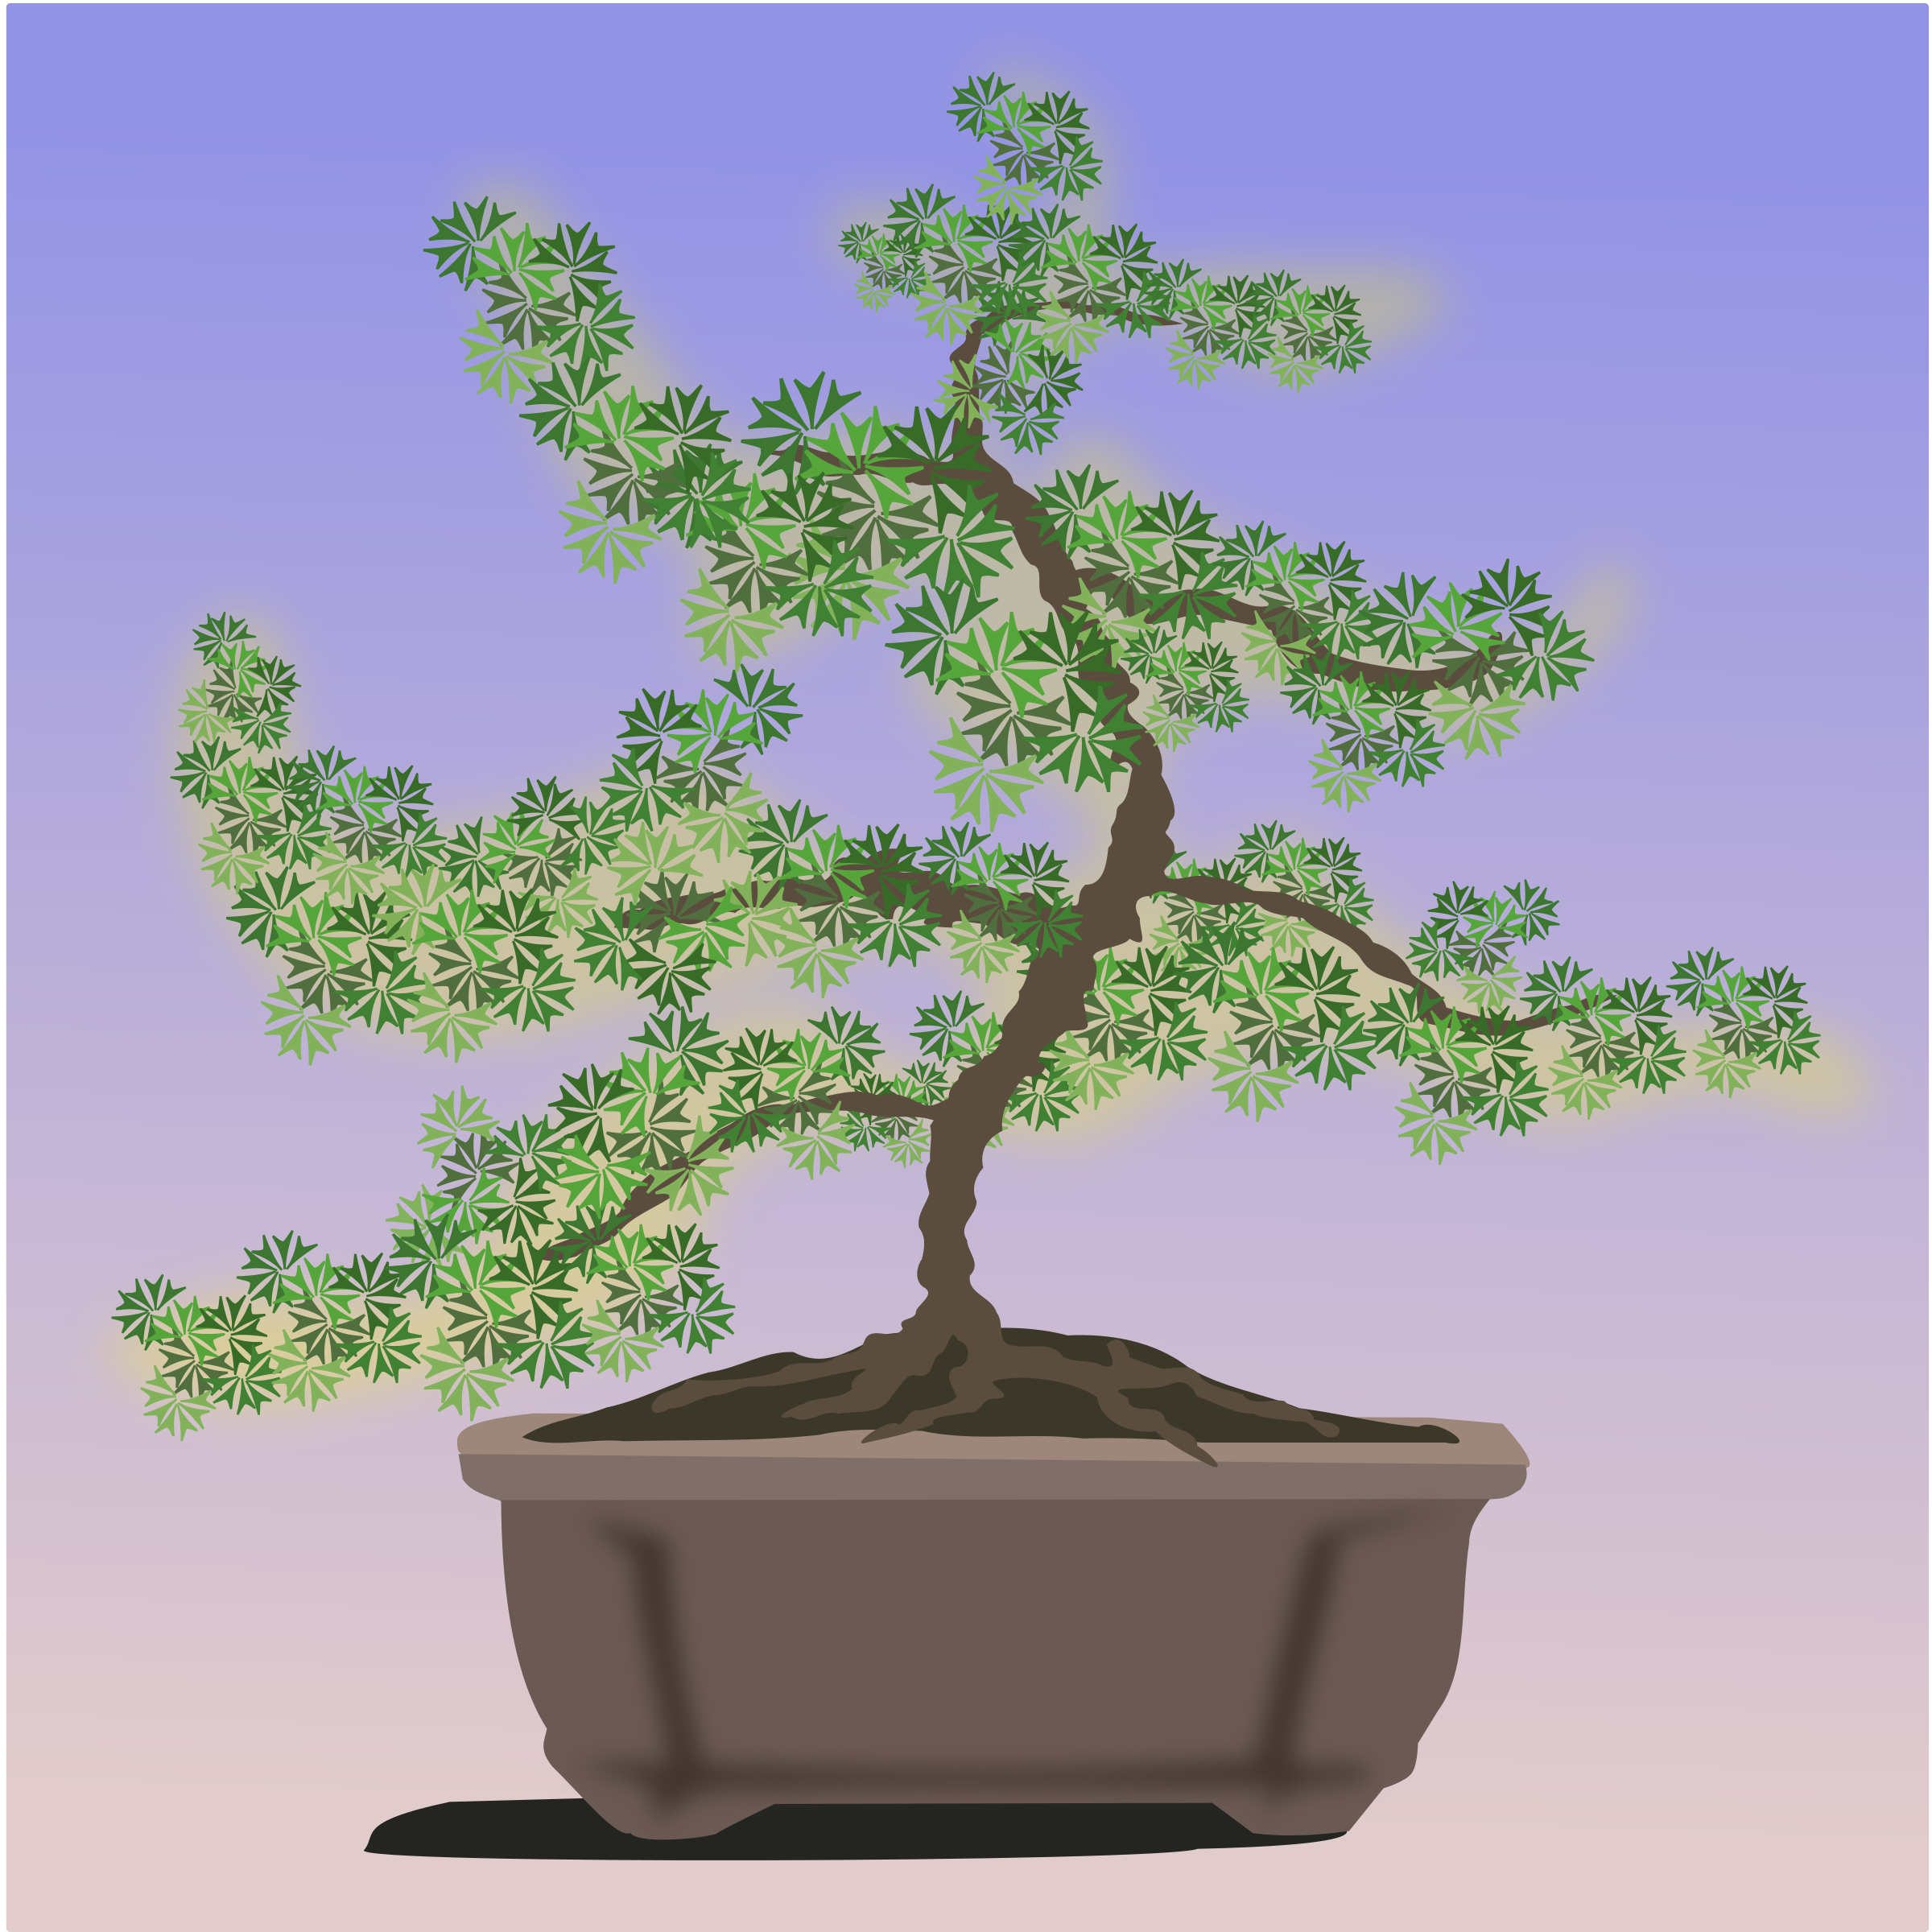 bonsai-08 by jpenrici